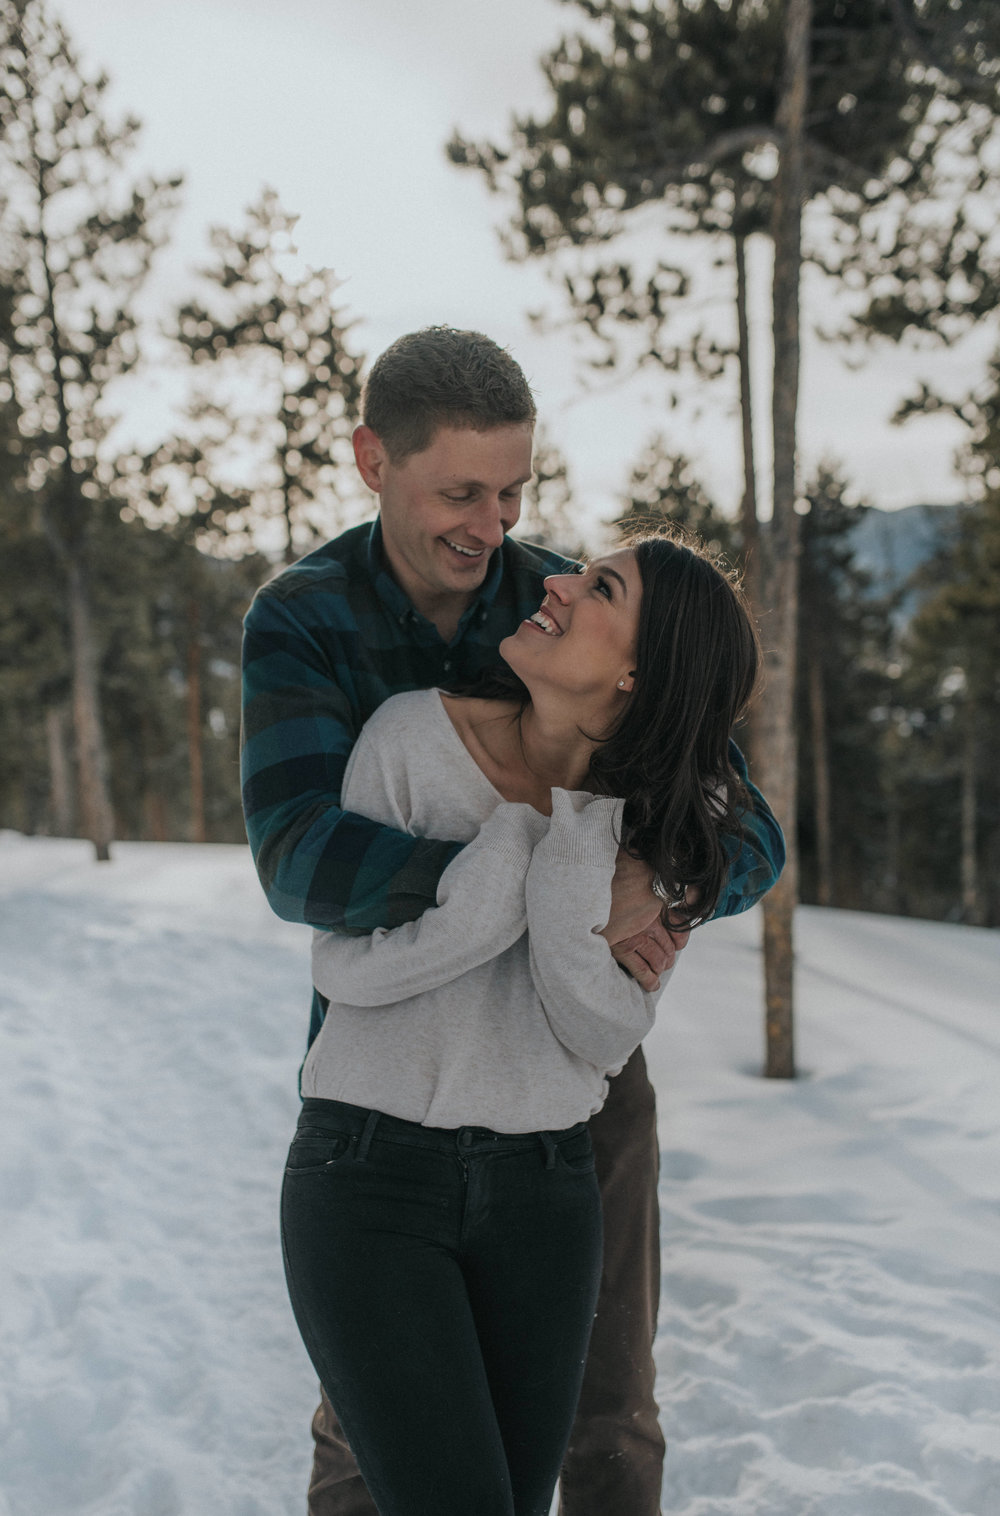 Engagement photos at Lake Dillon in Colorado. Denver wedding and elopement photographer.